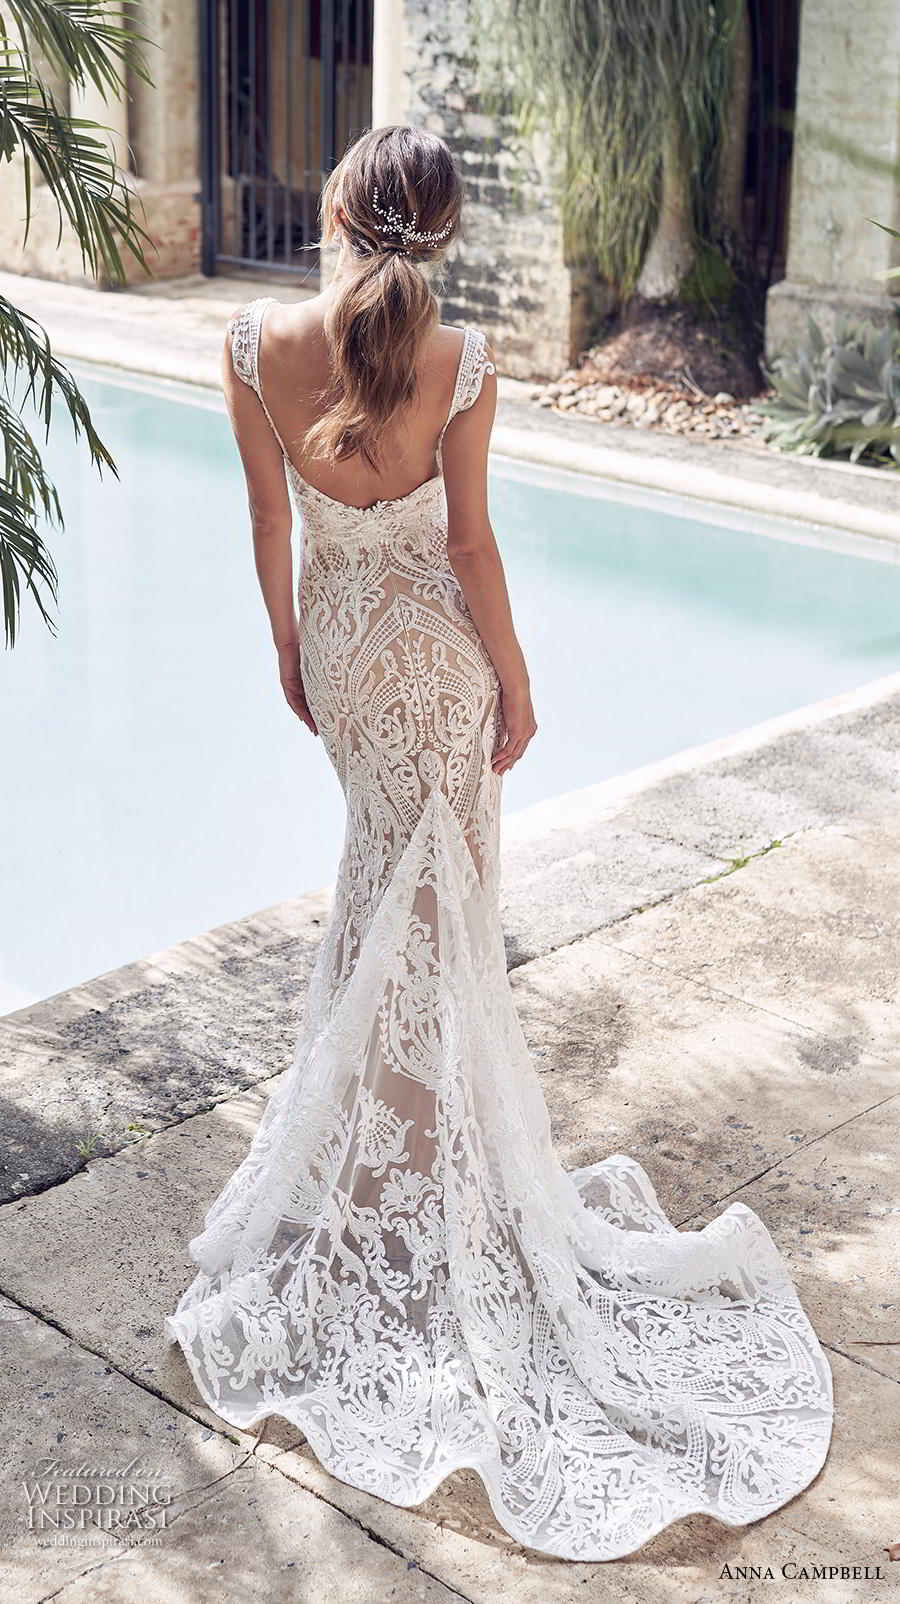 anna campbell 2019 bridal sleeveless v neck full embellishment elegant glamorous fit and flare wedding dress backless medium train (13) bv